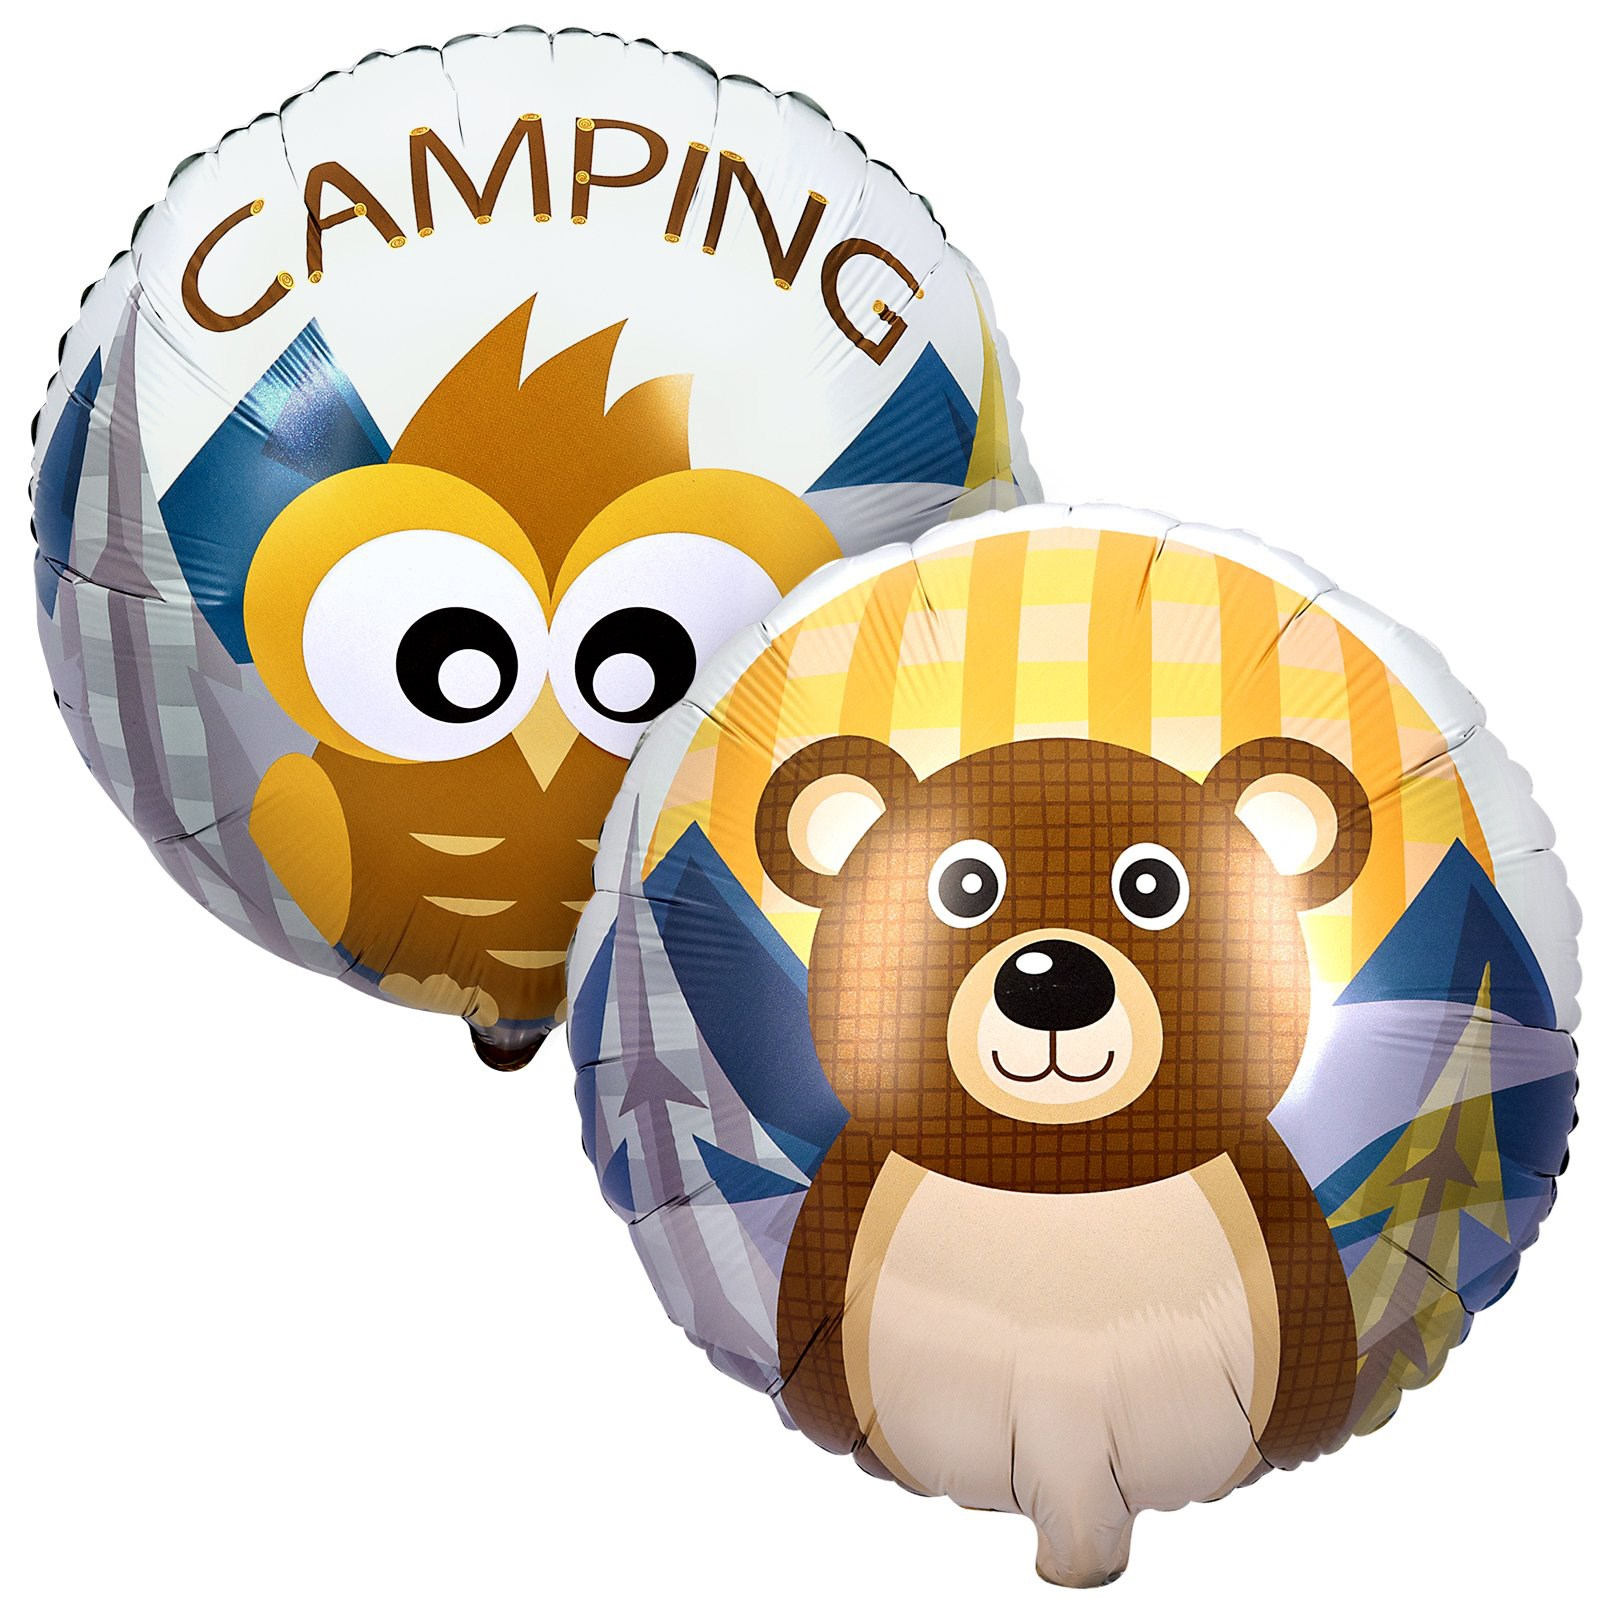 Let's Go Camping Foil Balloon